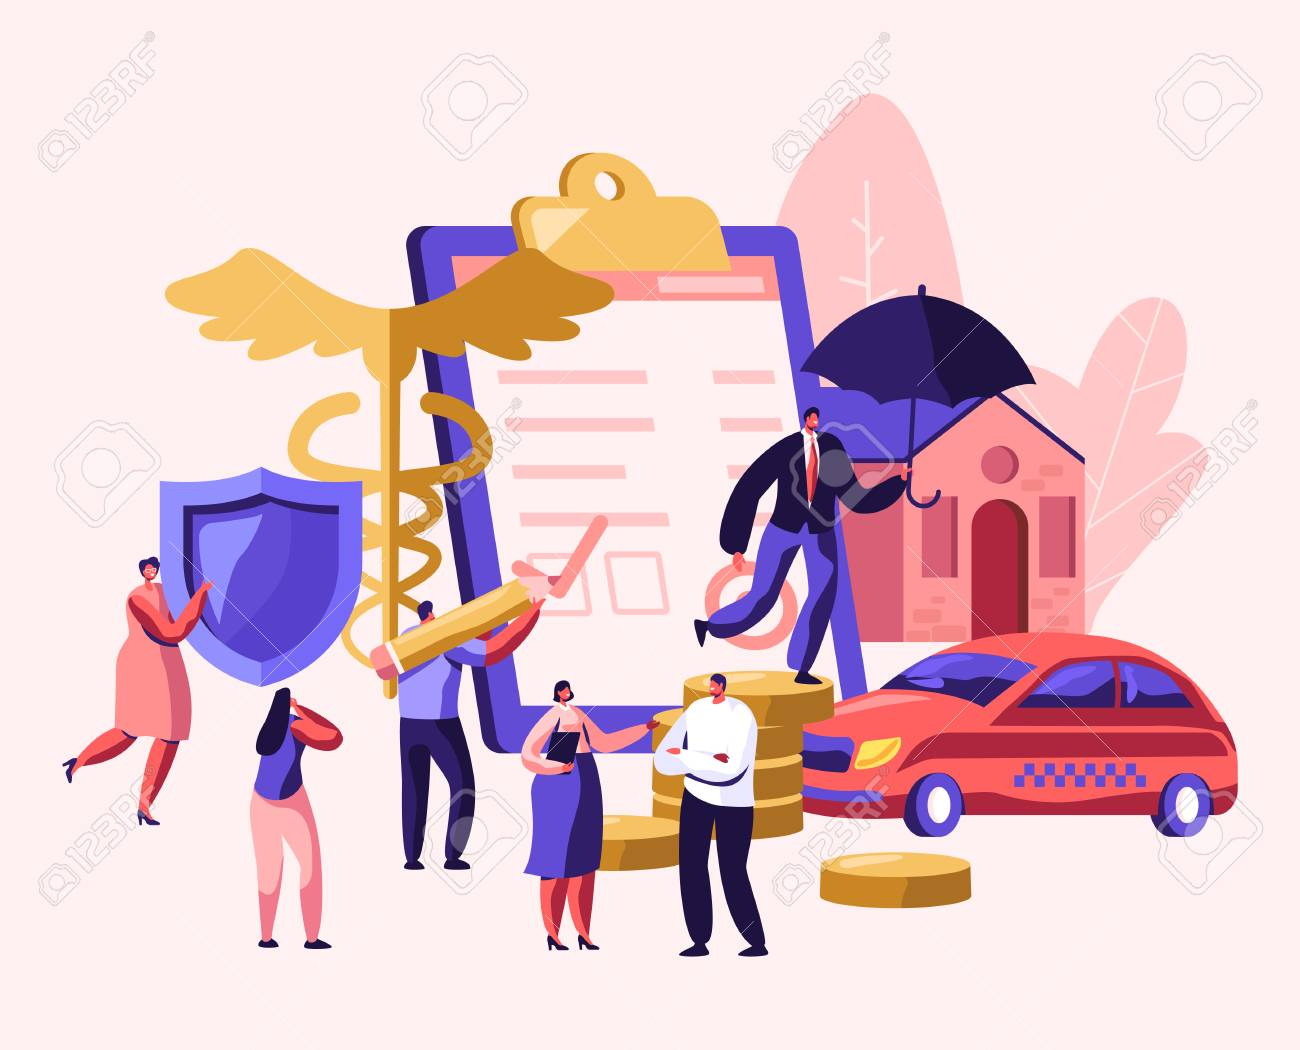 Property and Health Medical Insurance. Male and Female Characters Sign Insurance Policy Paper, Document for Having Guarantee and Money. Car, Home, Life Protection Cartoon Flat Vector Illustration - 123180451